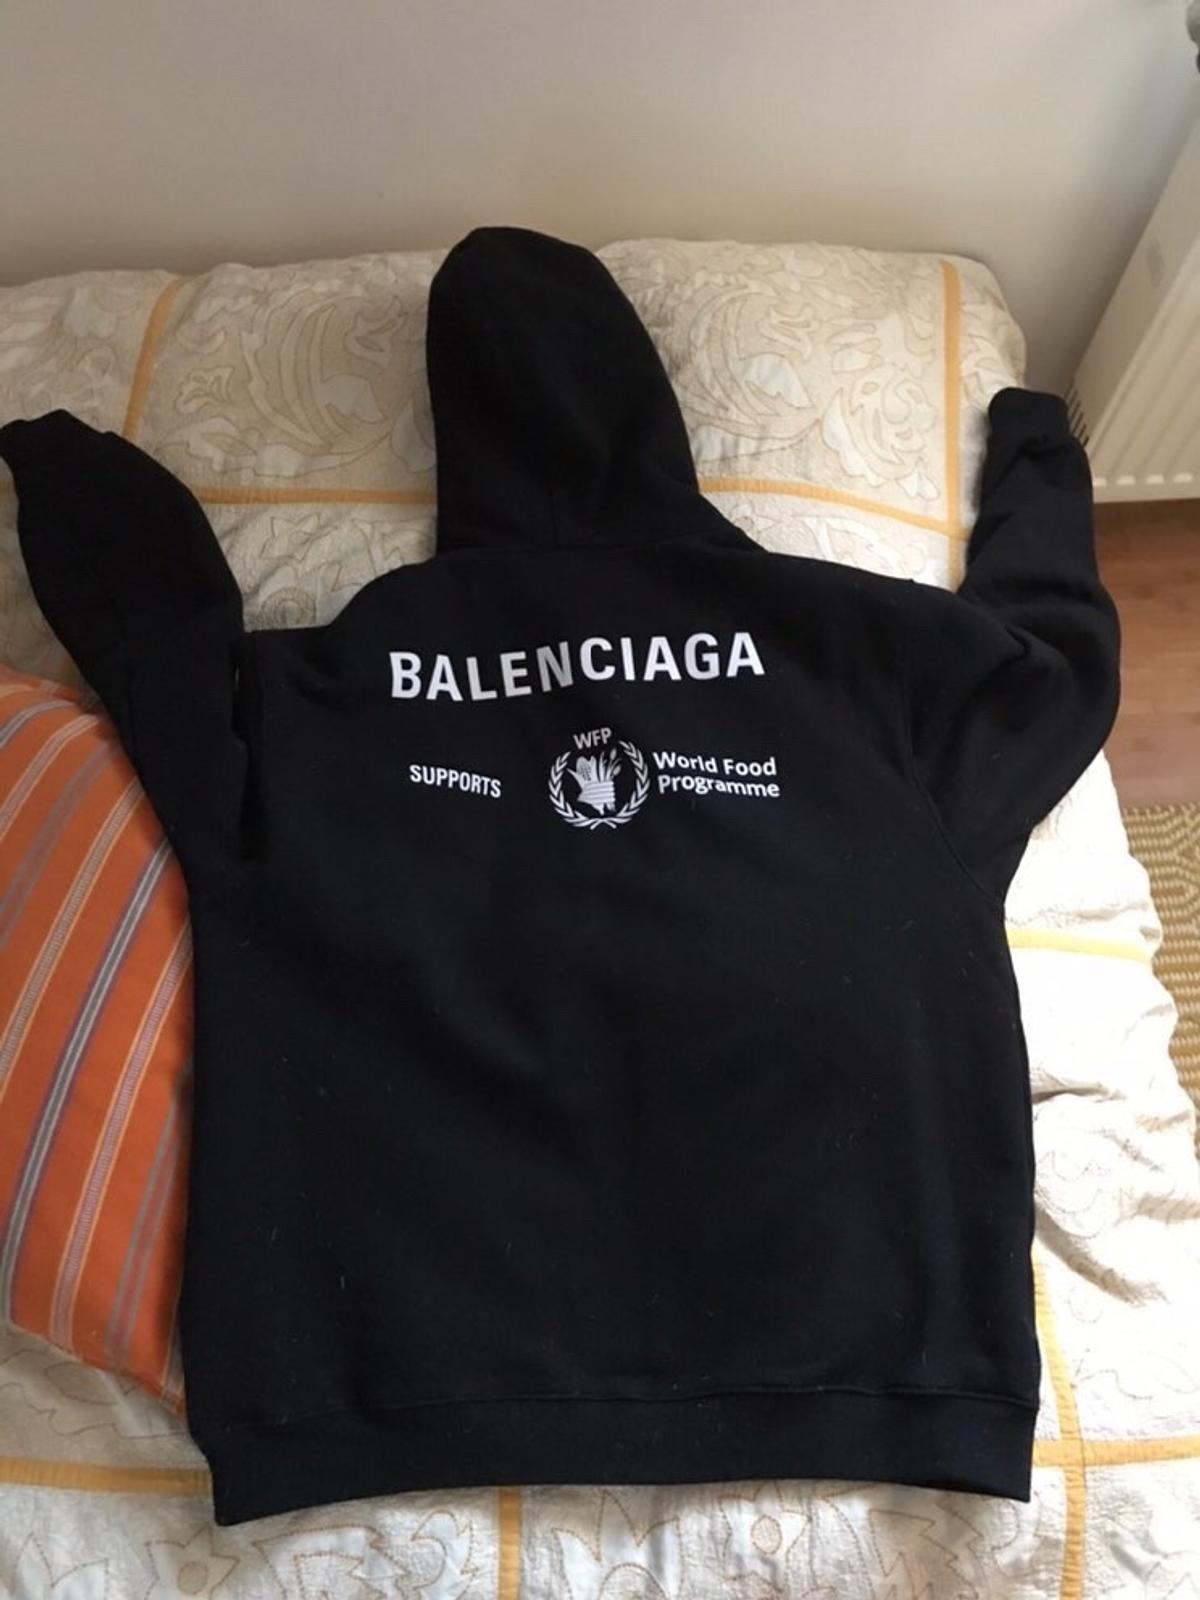 Balenciaga World Food Programme In 80336 Munchen For 450 00 For Sale Shpock